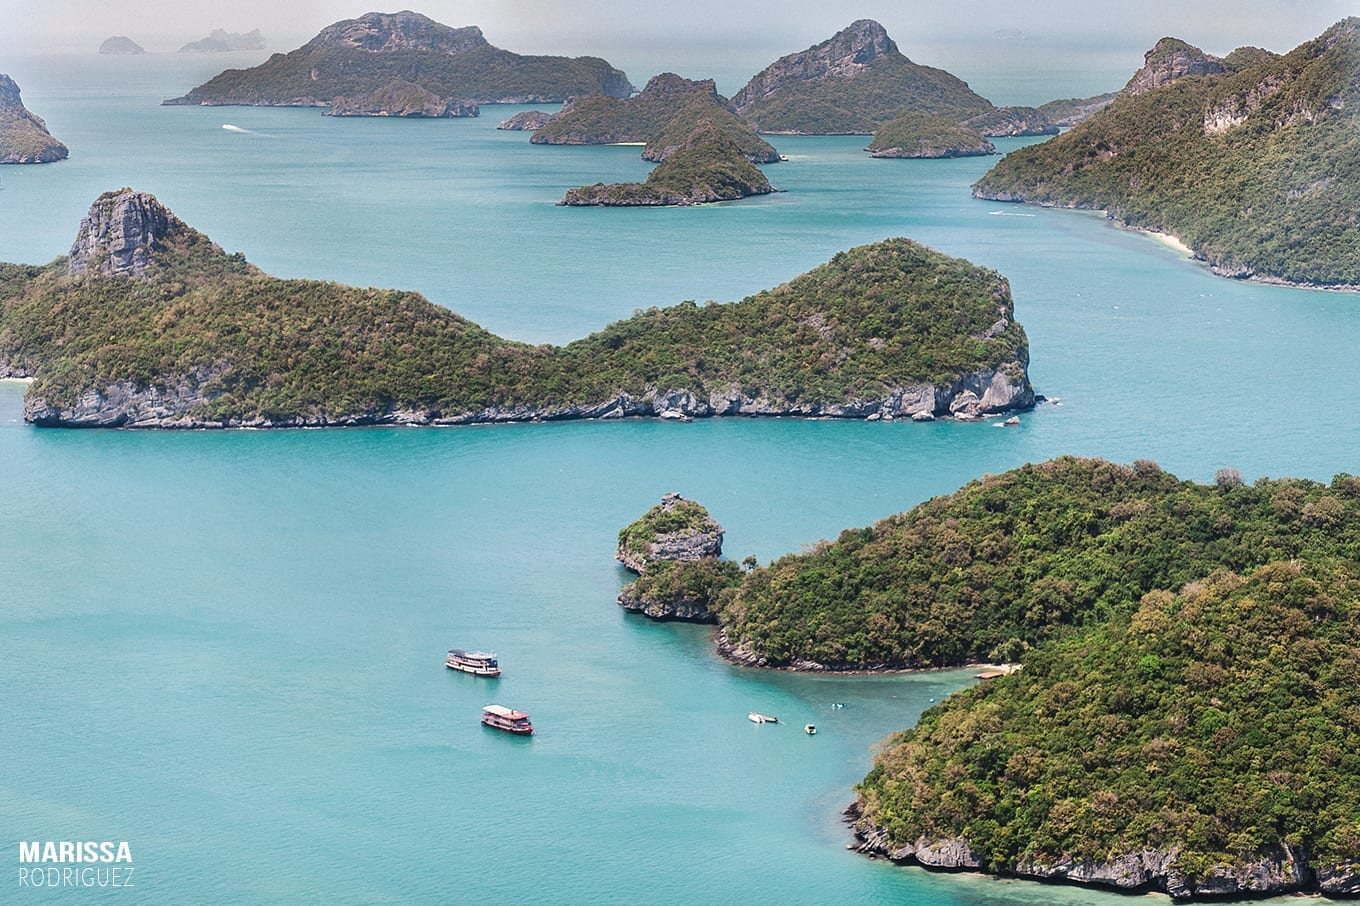 THAILAND: ANG THONG NATIONAL PARK & AWESOME RESOURCES